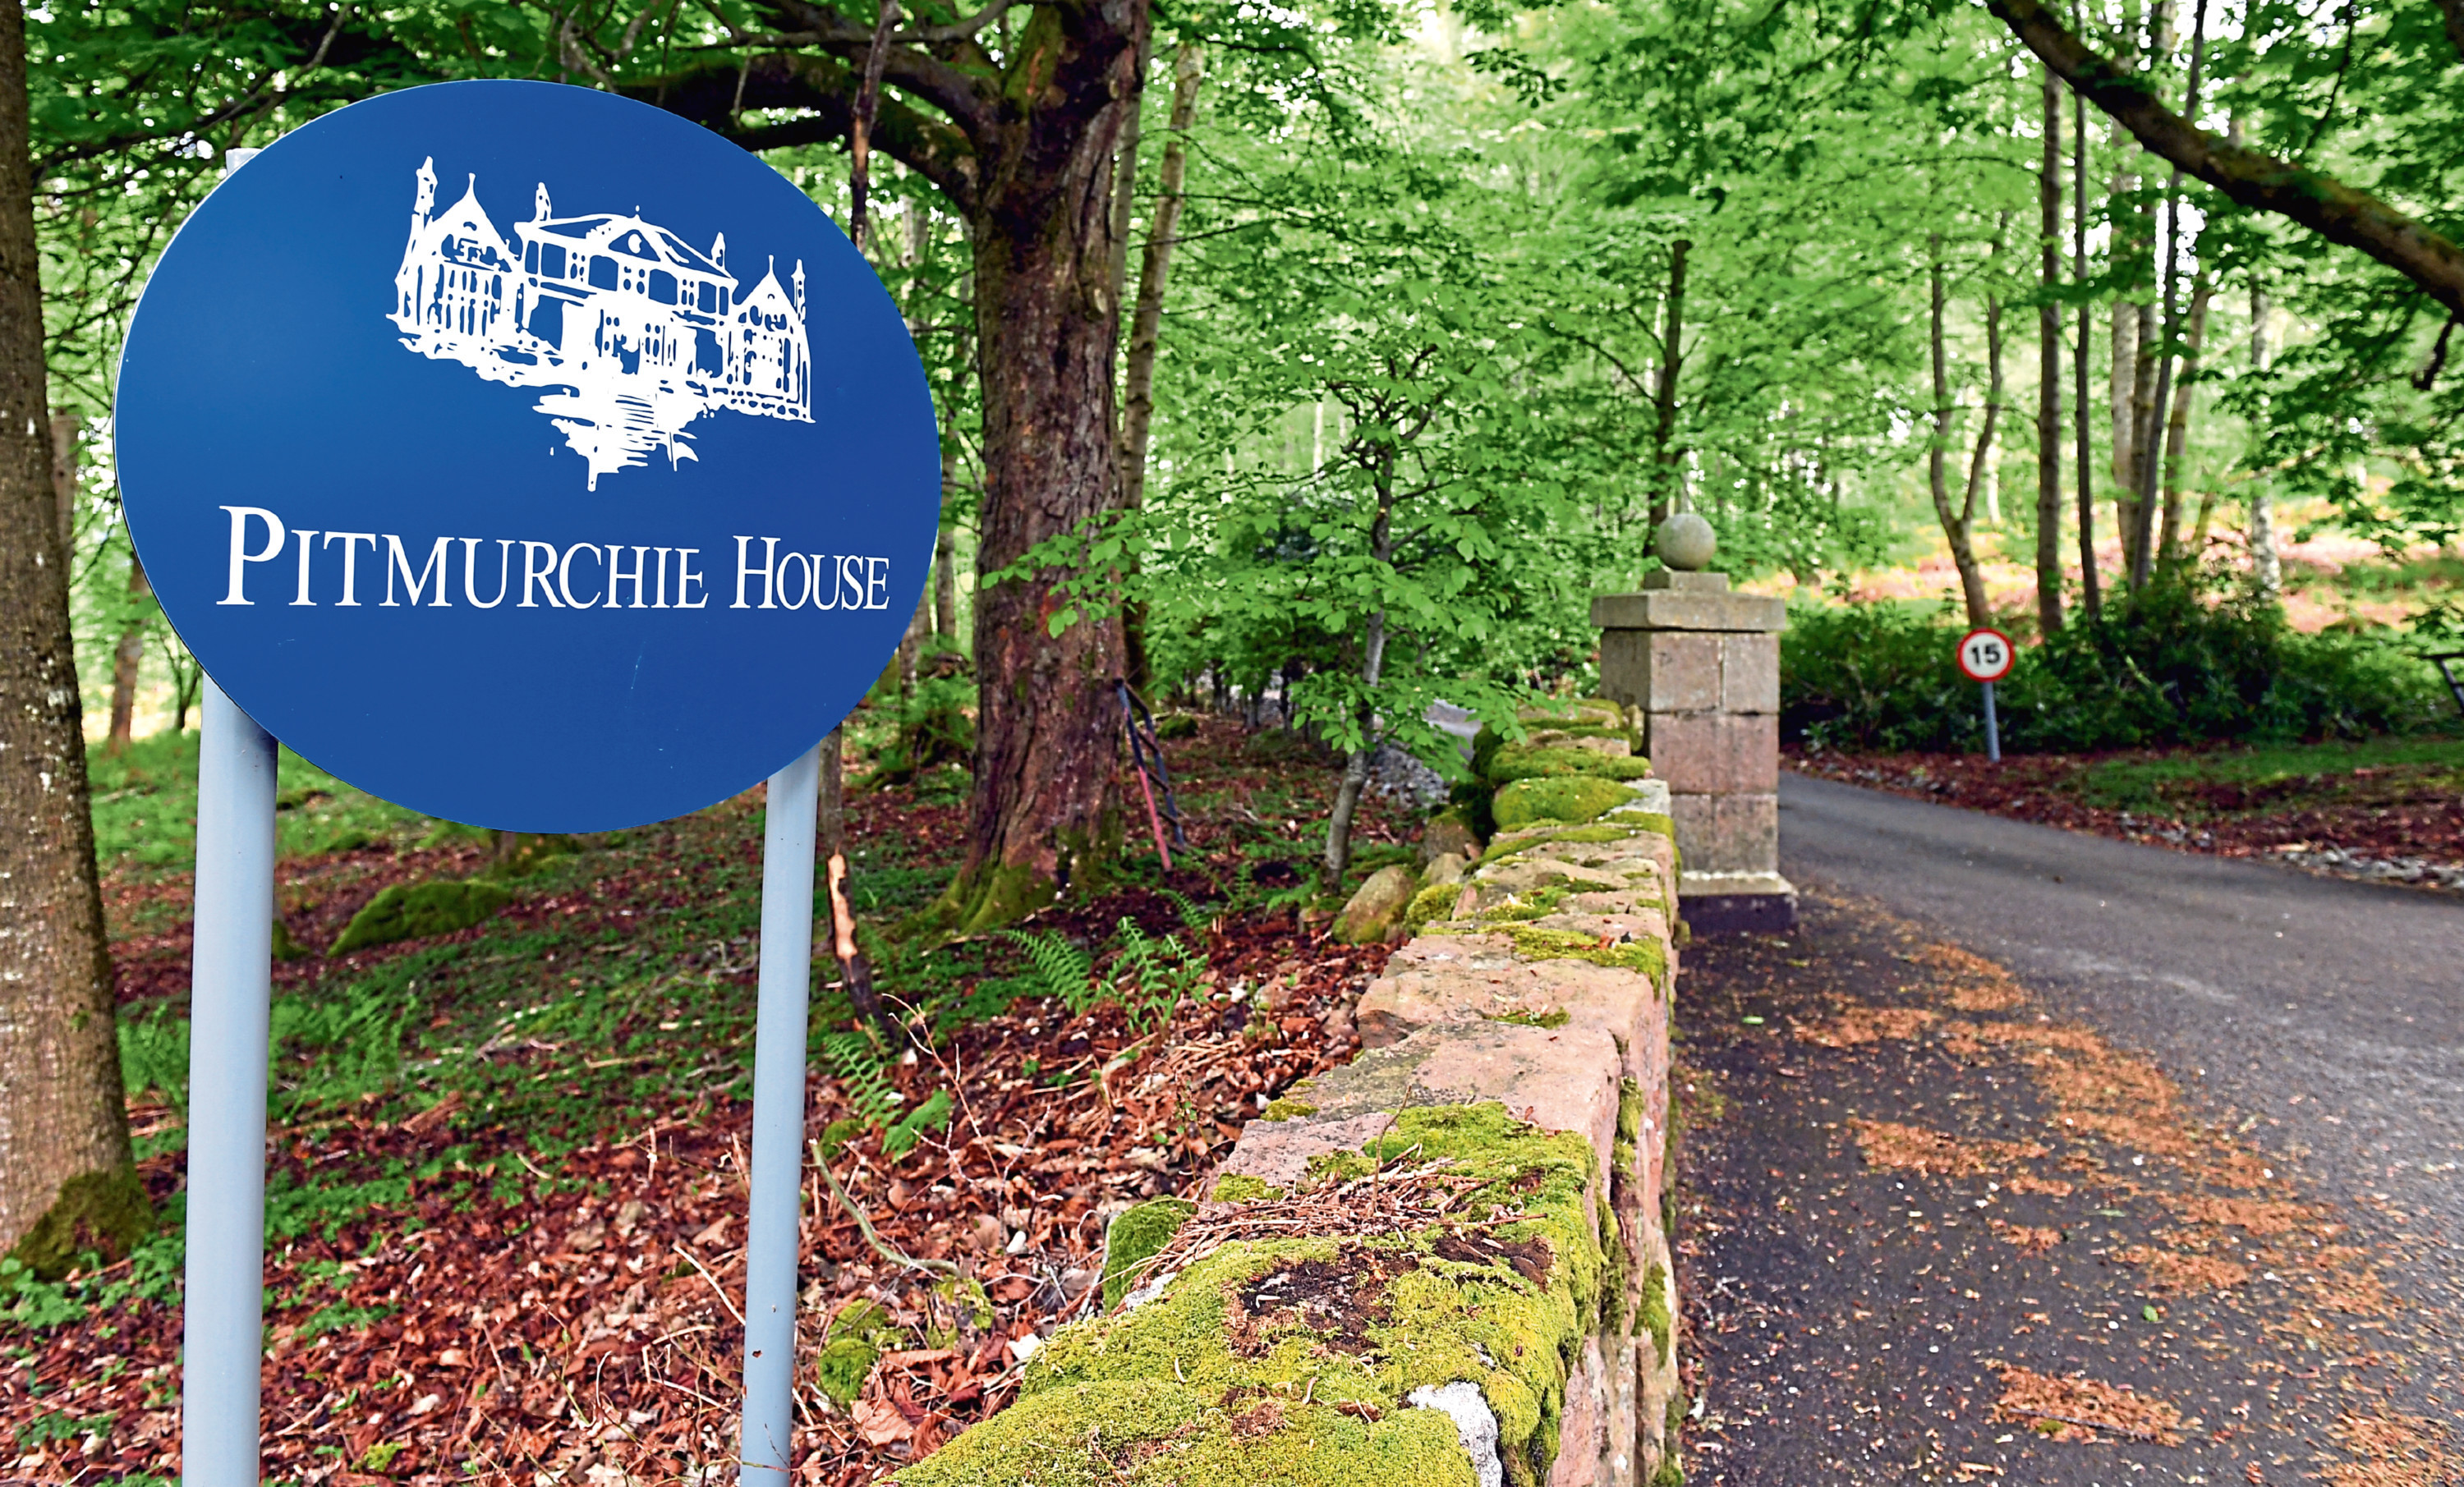 Advinia Health Care, which owns Pitmurchie House Care Home in Torphins, plans to close the home